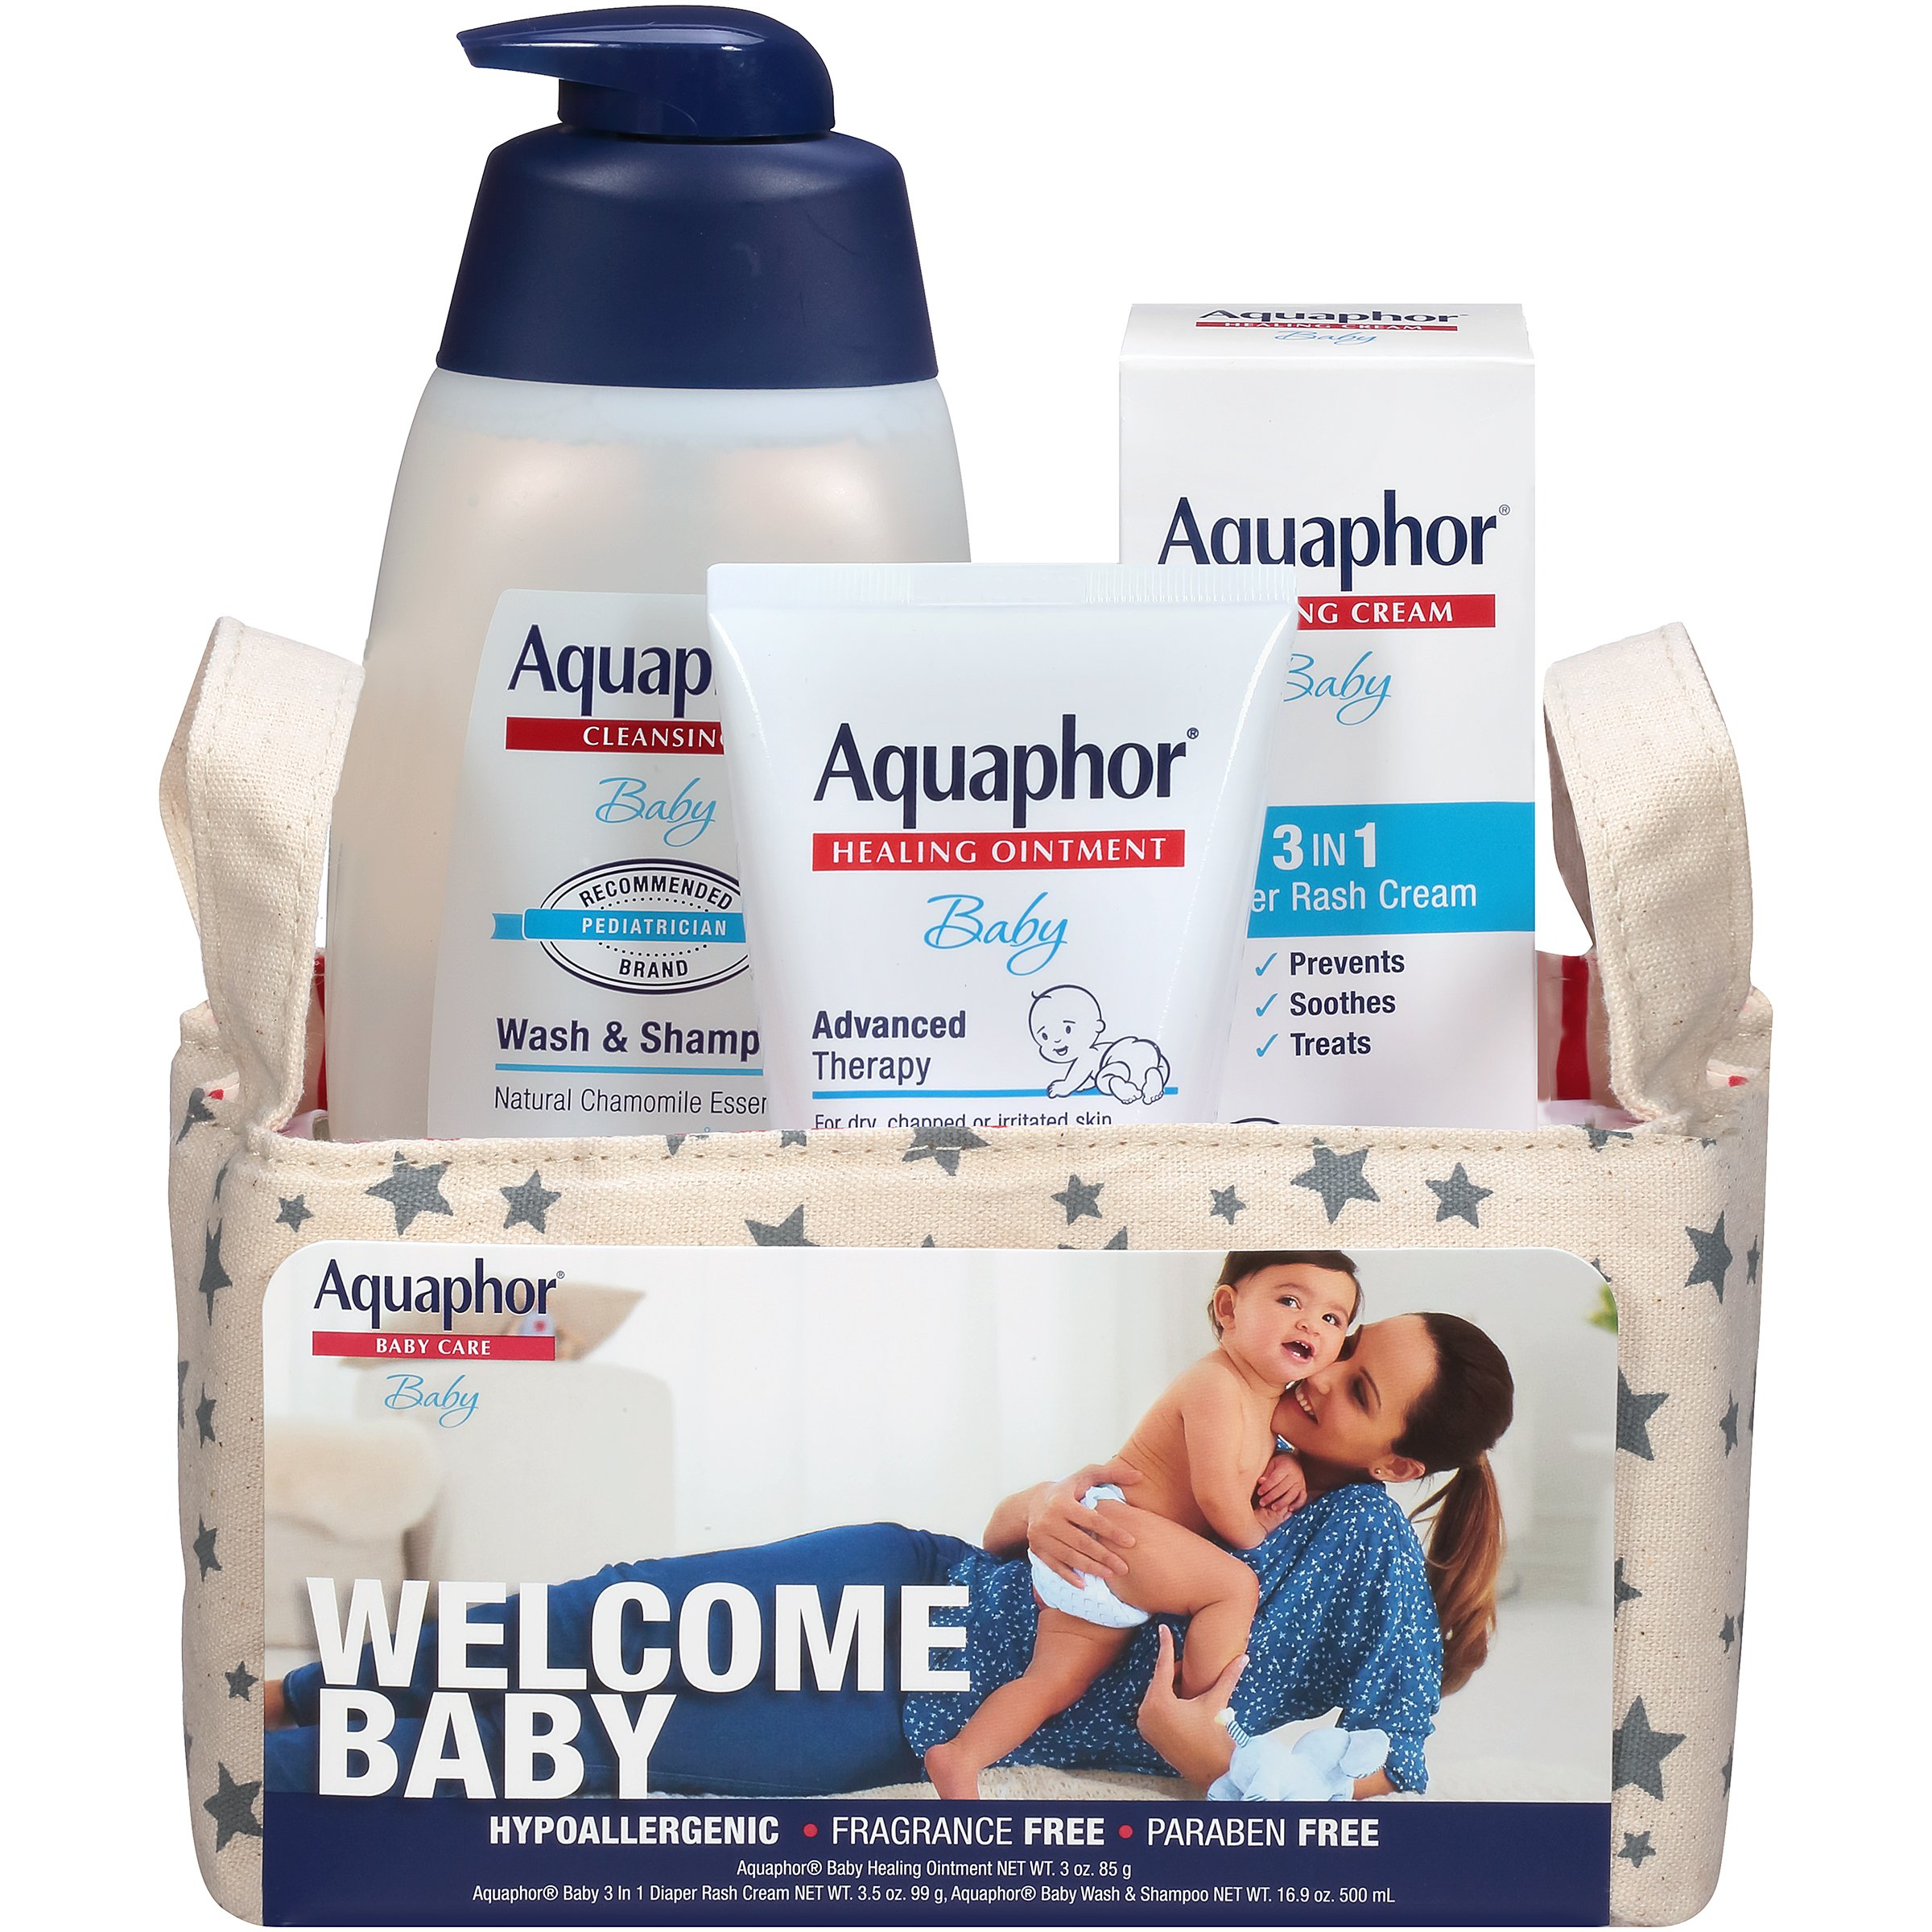 Aquaphor Baby Welcome Baby Gift Set - Value Size - Healing Ointment, Wash and Shampoo, 3 in 1 Diaper Rash Cream by Aquaphor